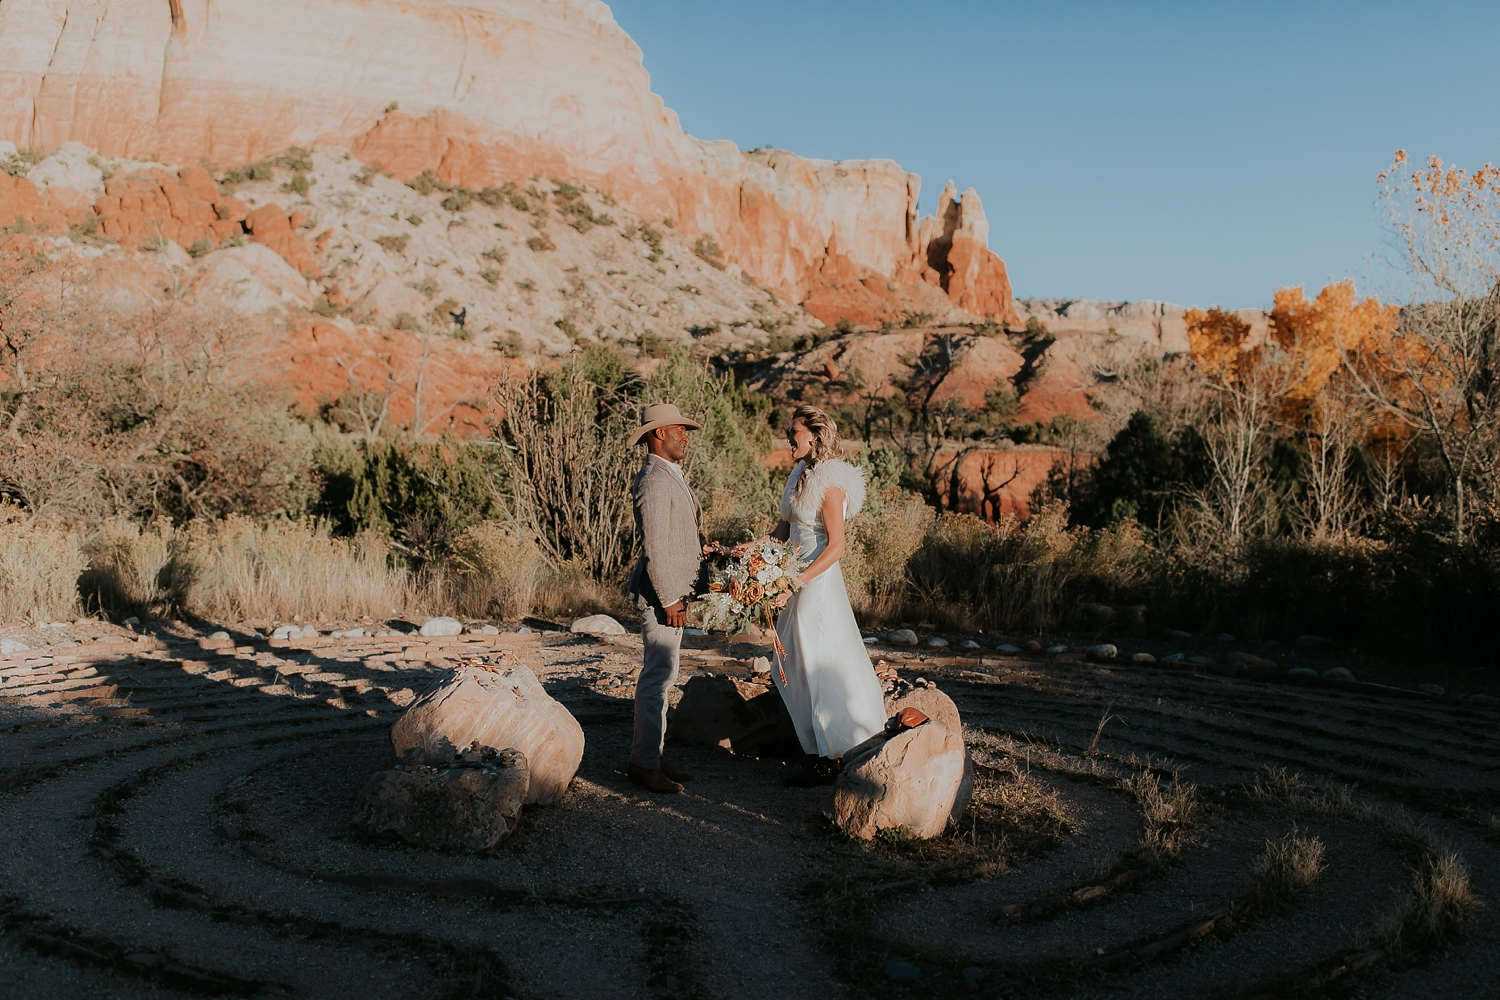 Alicia+lucia+photography+-+albuquerque+wedding+photographer+-+santa+fe+wedding+photography+-+new+mexico+wedding+photographer+-+new+mexico+ghost+ranch+wedding+-+styled+wedding+shoot_0061.jpg